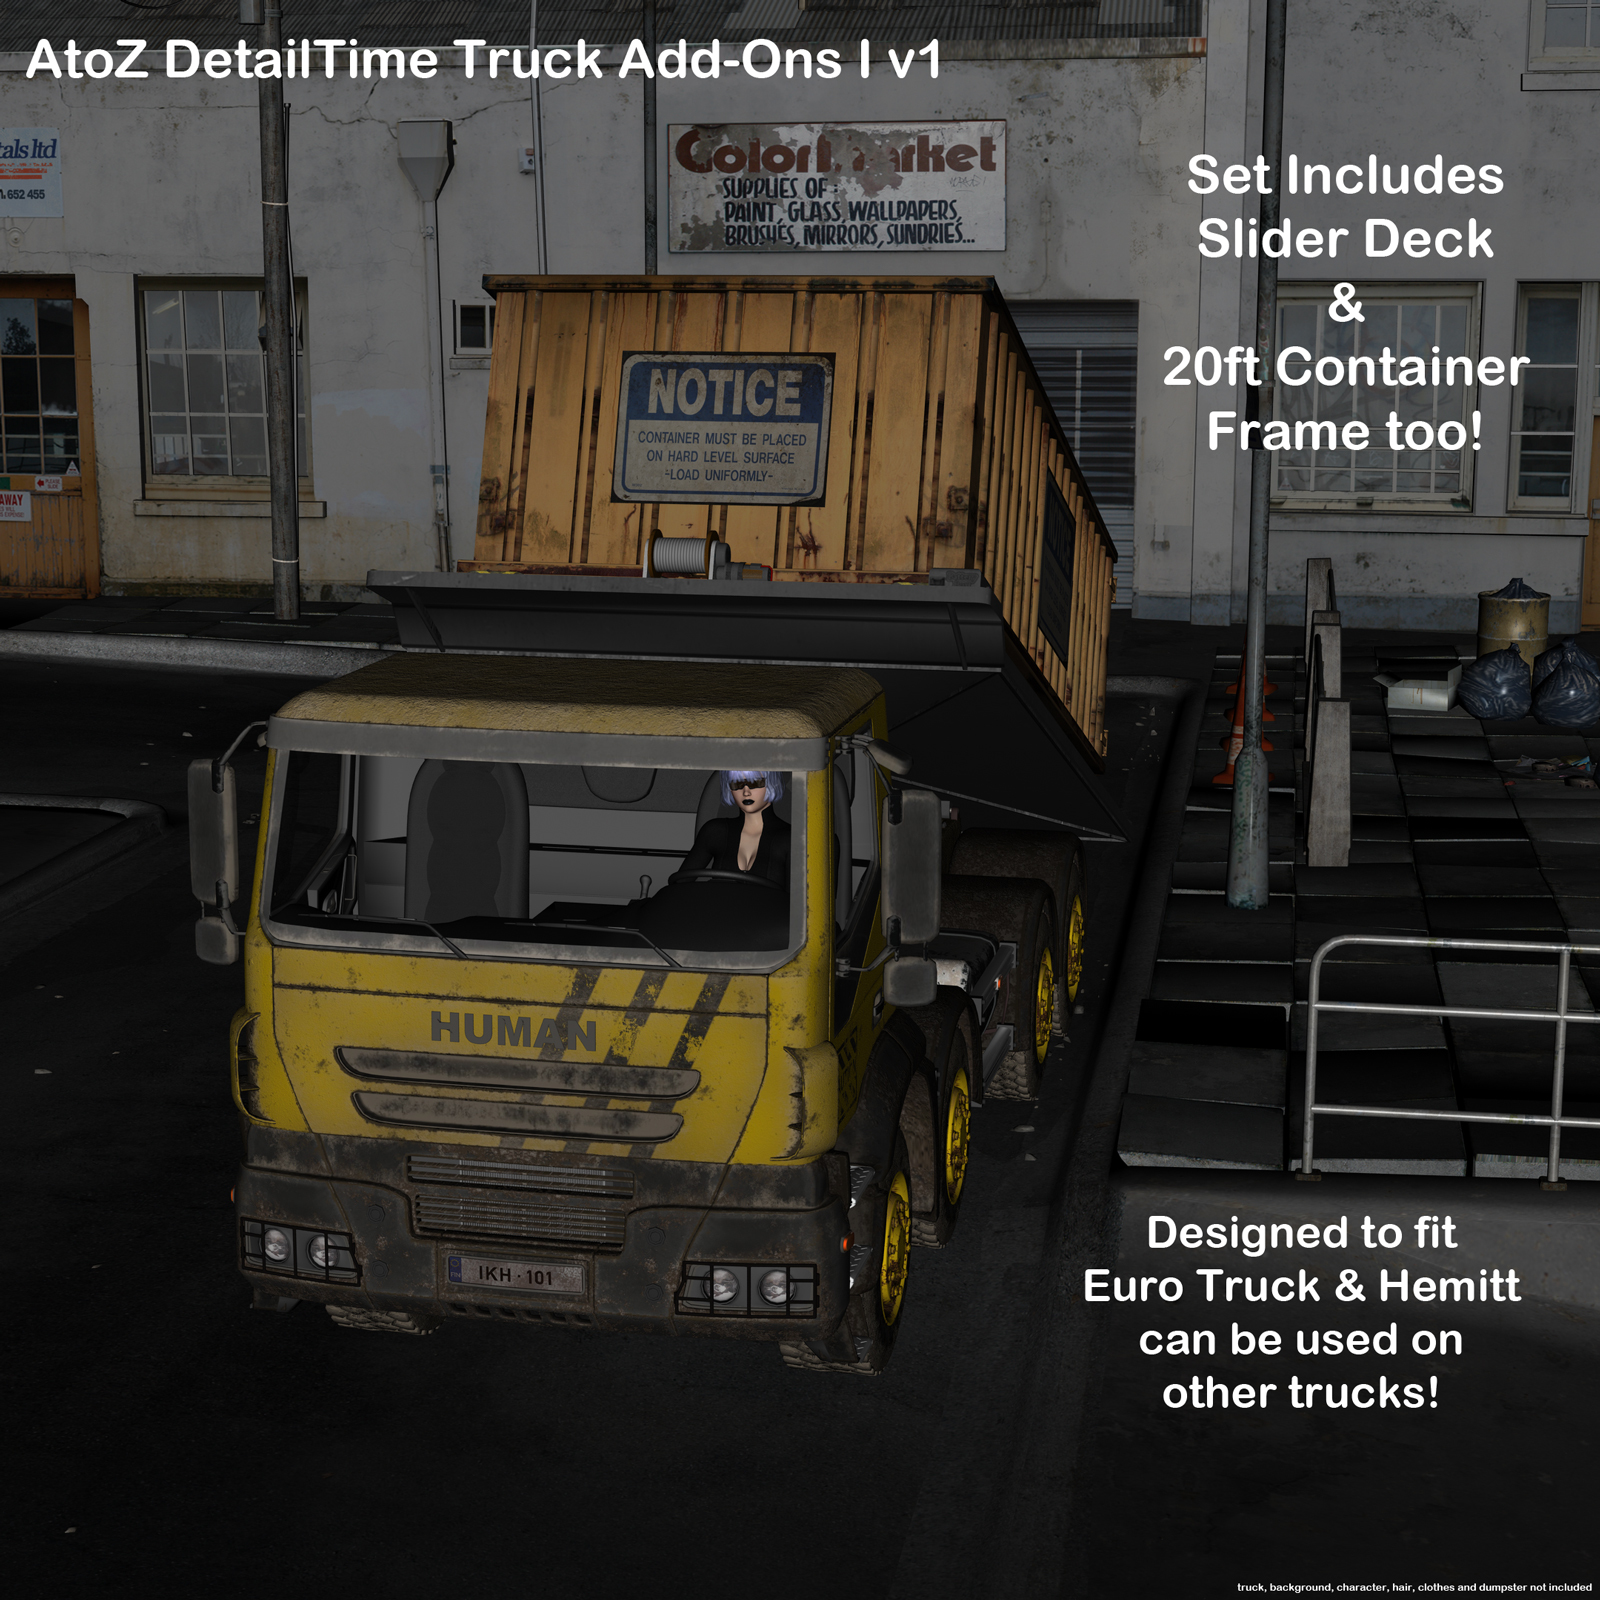 AtoZ DetailTime Truck Add Ons I v1 by AtoZ